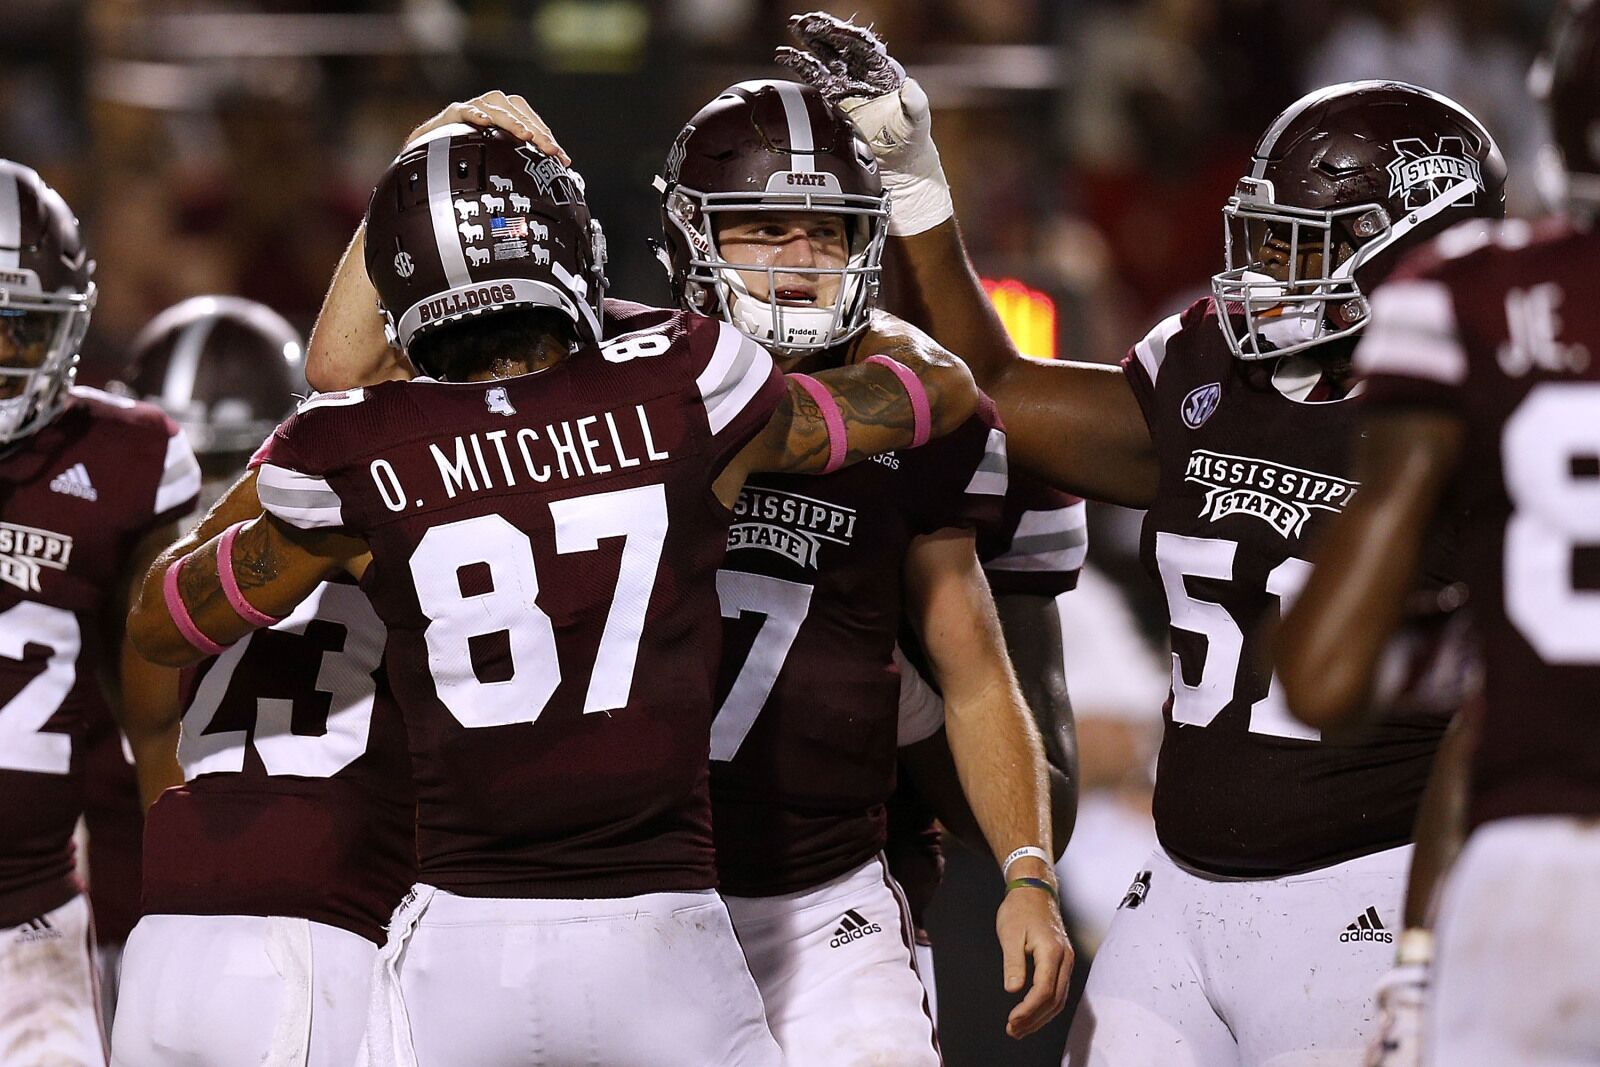 Mississippi State football: Nick Fitzgerald claims Tim Tebow's rushing record